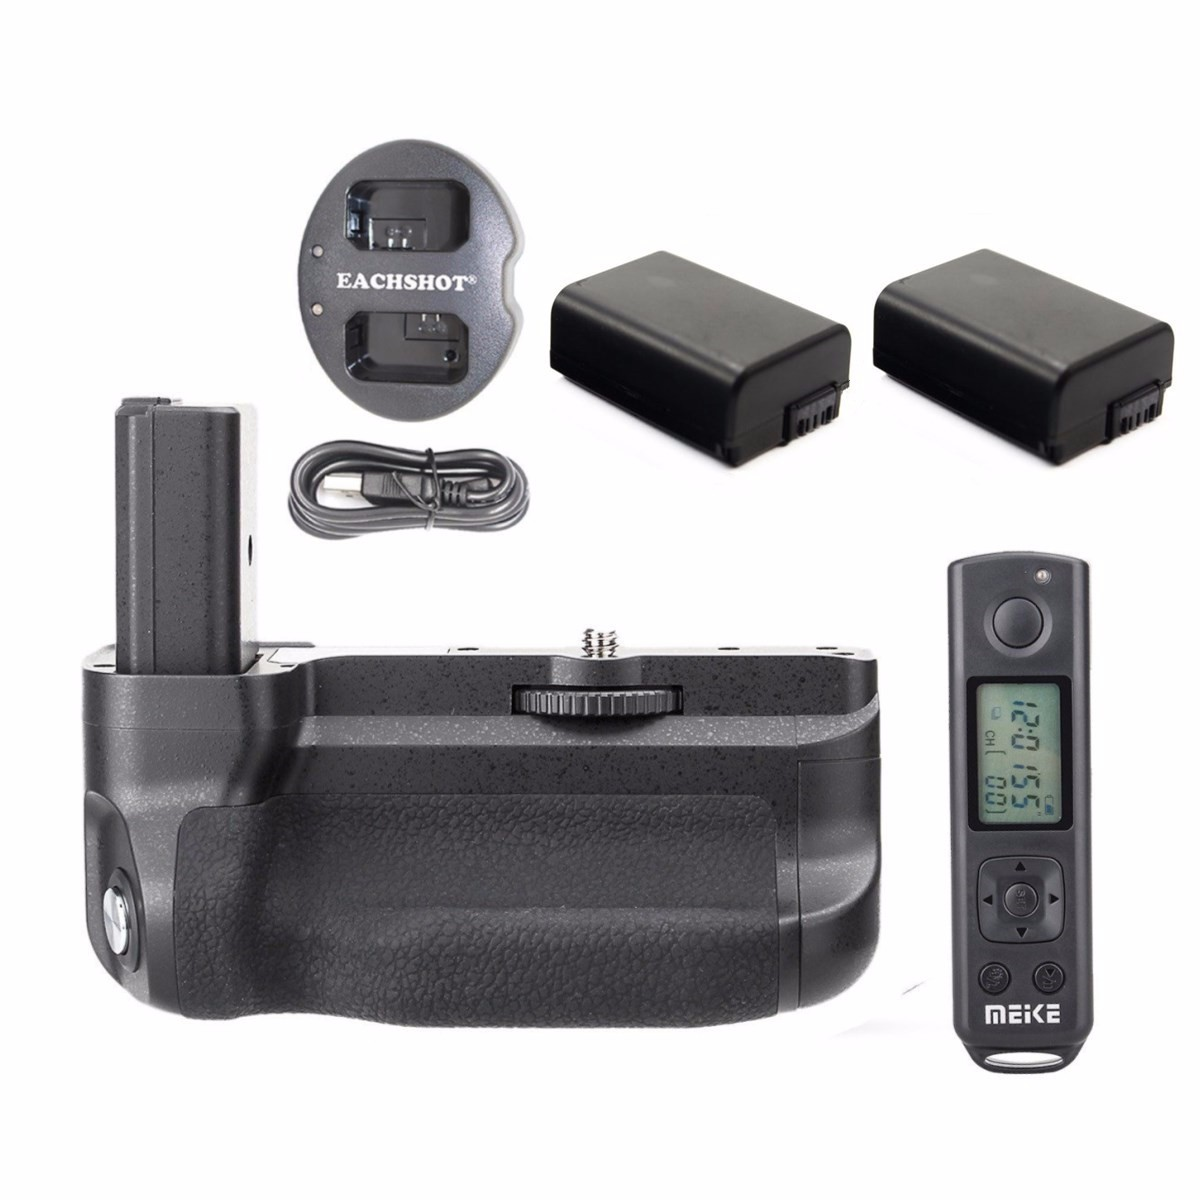 Meike MK-A6300 Pro 2.4G Wireless Control Battery Grip For Sony A6300 + 2* NP-FW50 batteries + dual charger neewer meike battery grip for sony a6300 camera built in 2 4ghz remote control work with 1 or 2 np fw50 battery